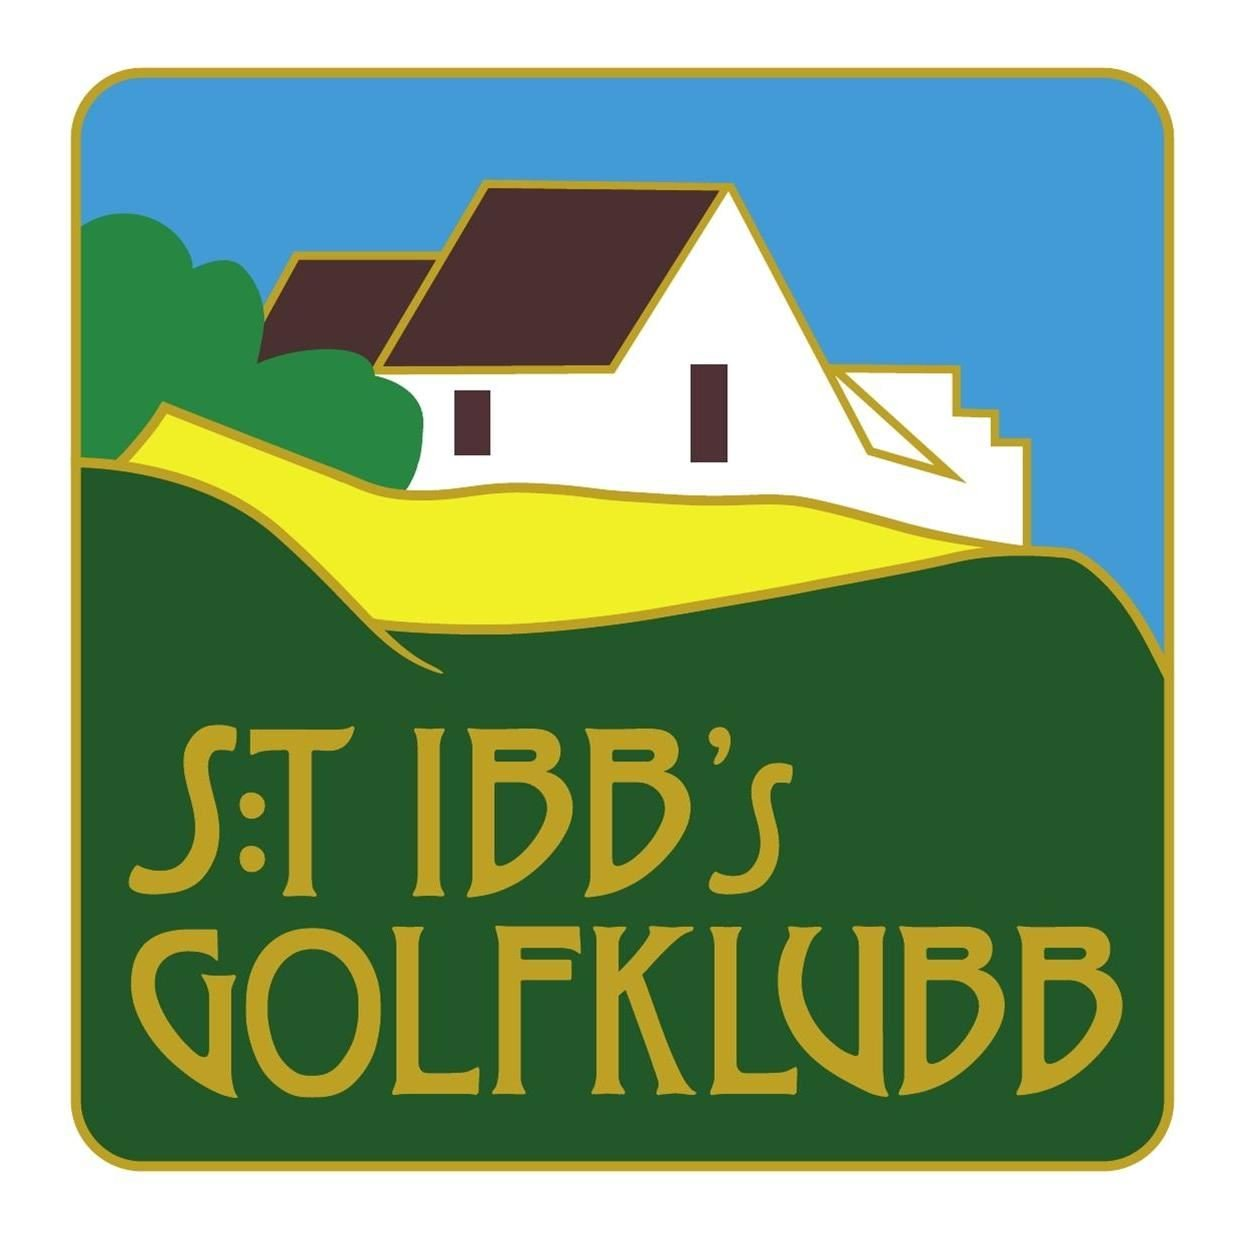 St Ibbs Golf Club on Ven